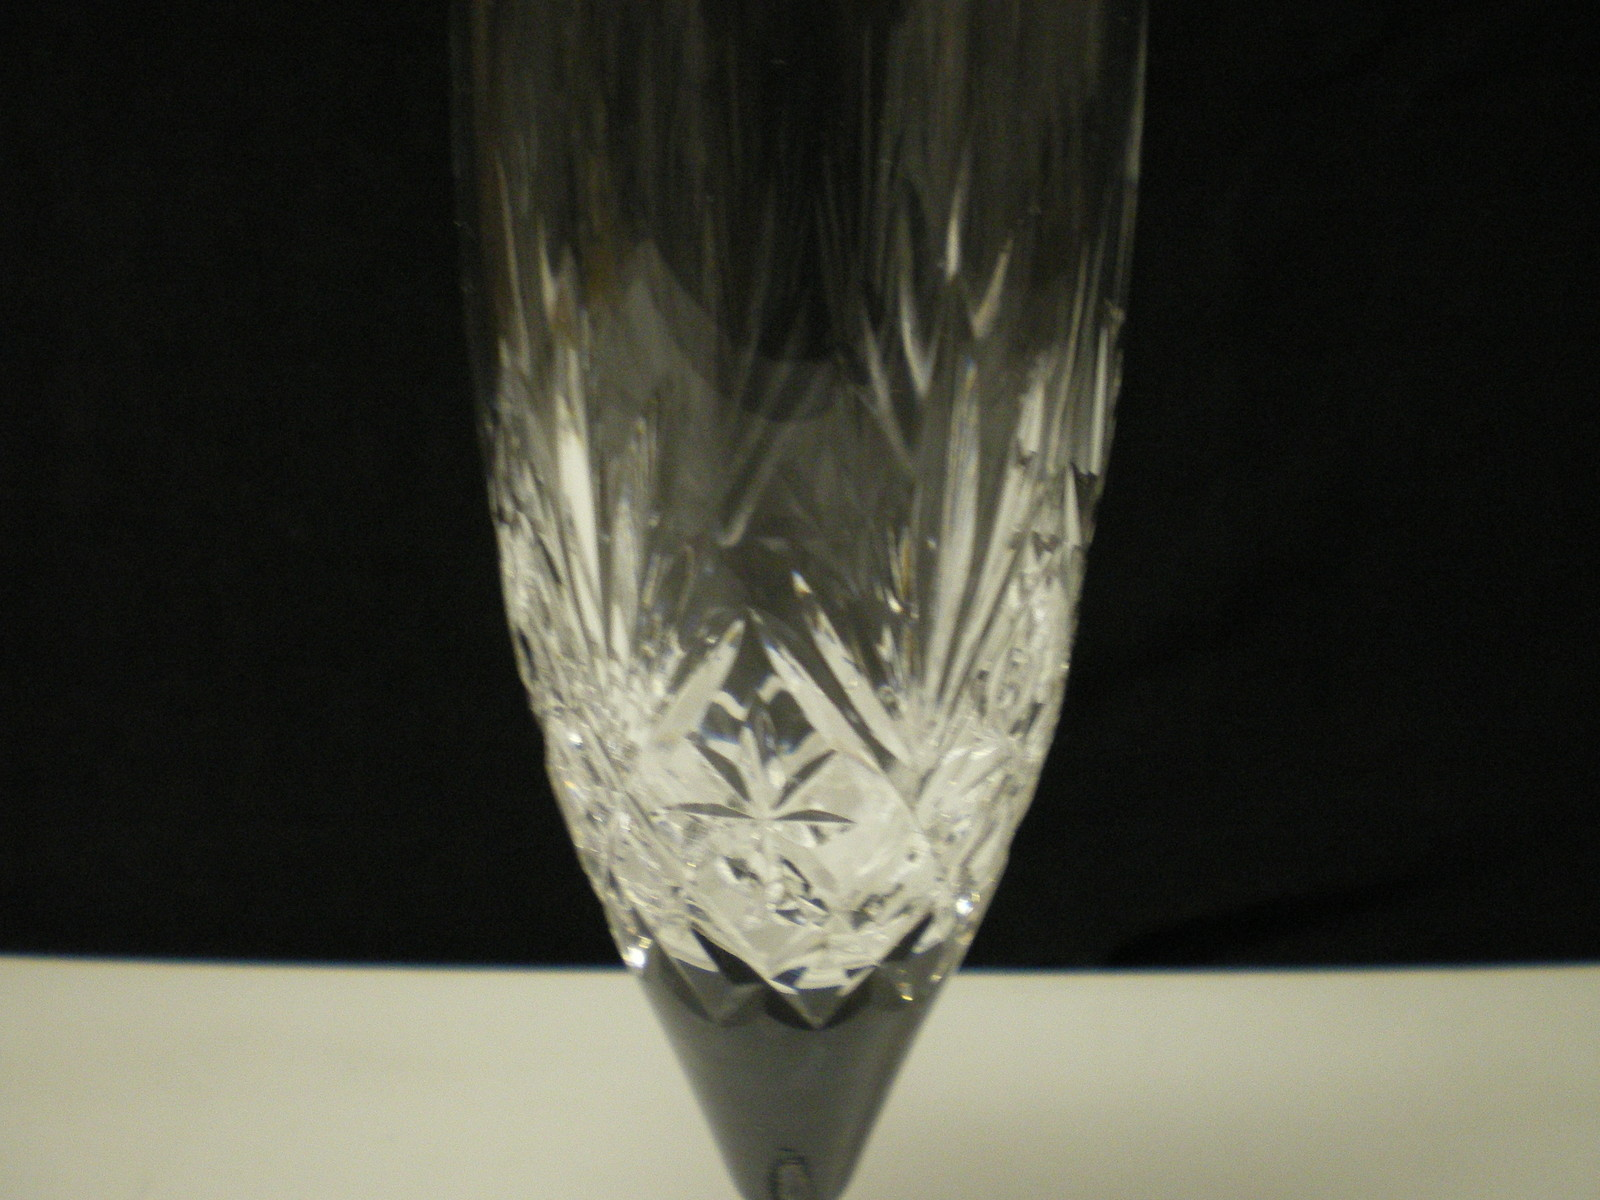 6 ROYAL DOULTON KNIGHTSBRIDGE CHAMPAGNE FLUTES~~~set of 6~~~~take a look